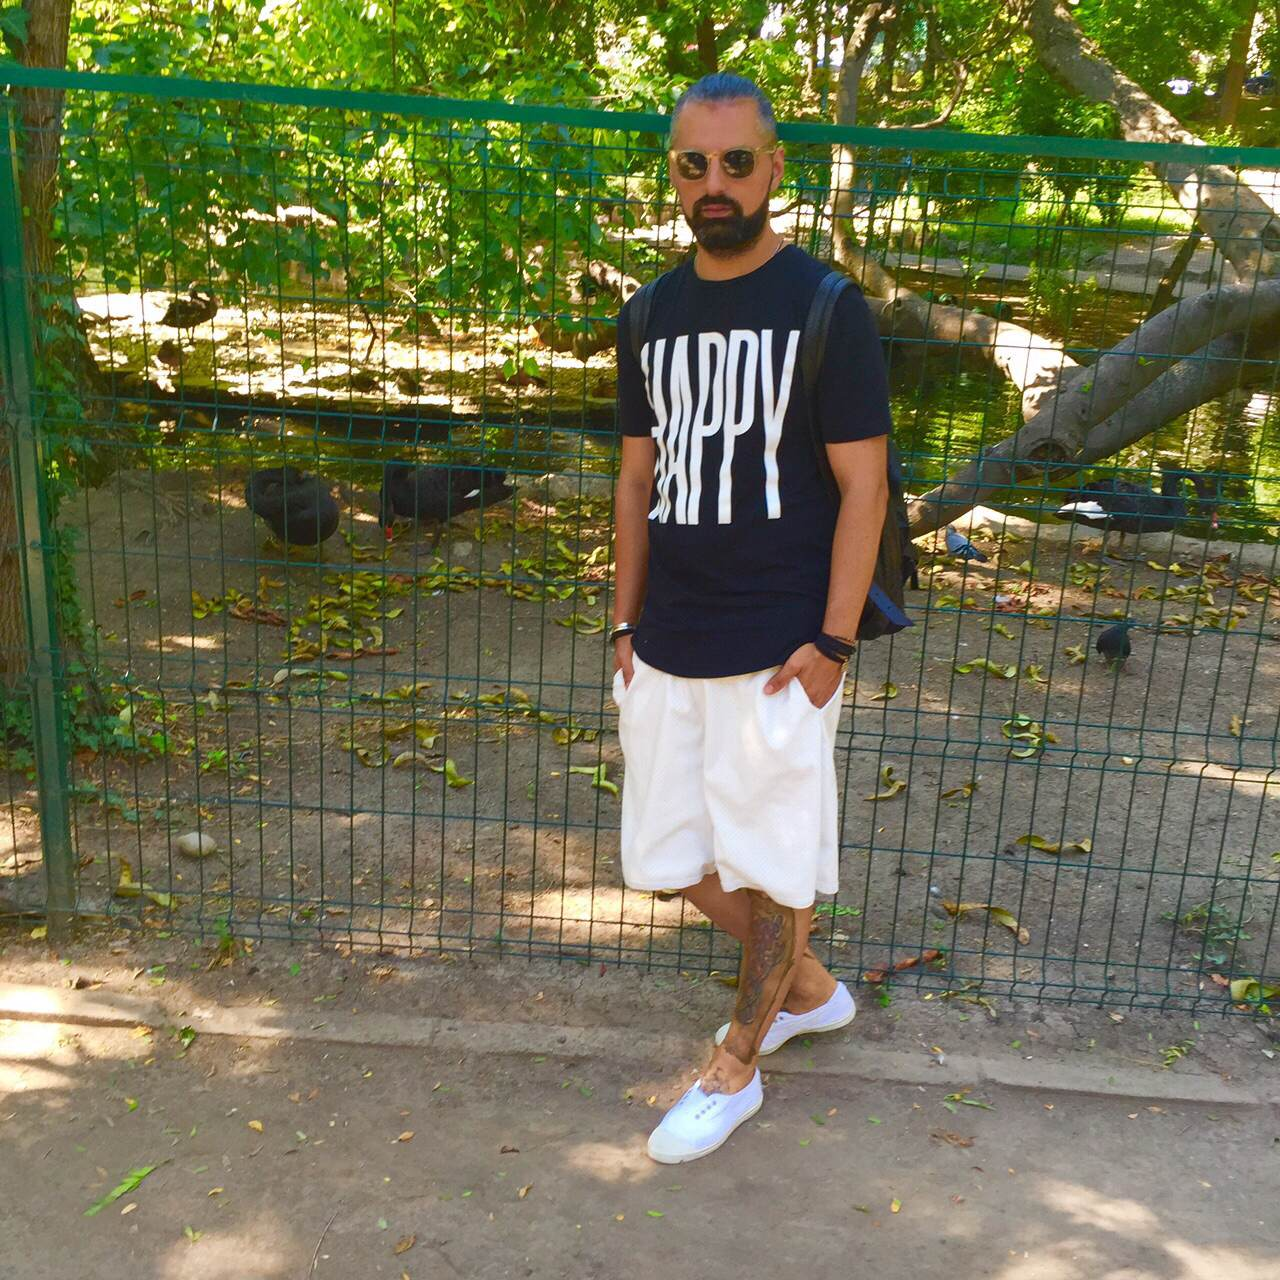 Tshirt Topman Pants Imperial Shoes Bensimon  Sunglasses Oliver Peoples from Opticris 1947